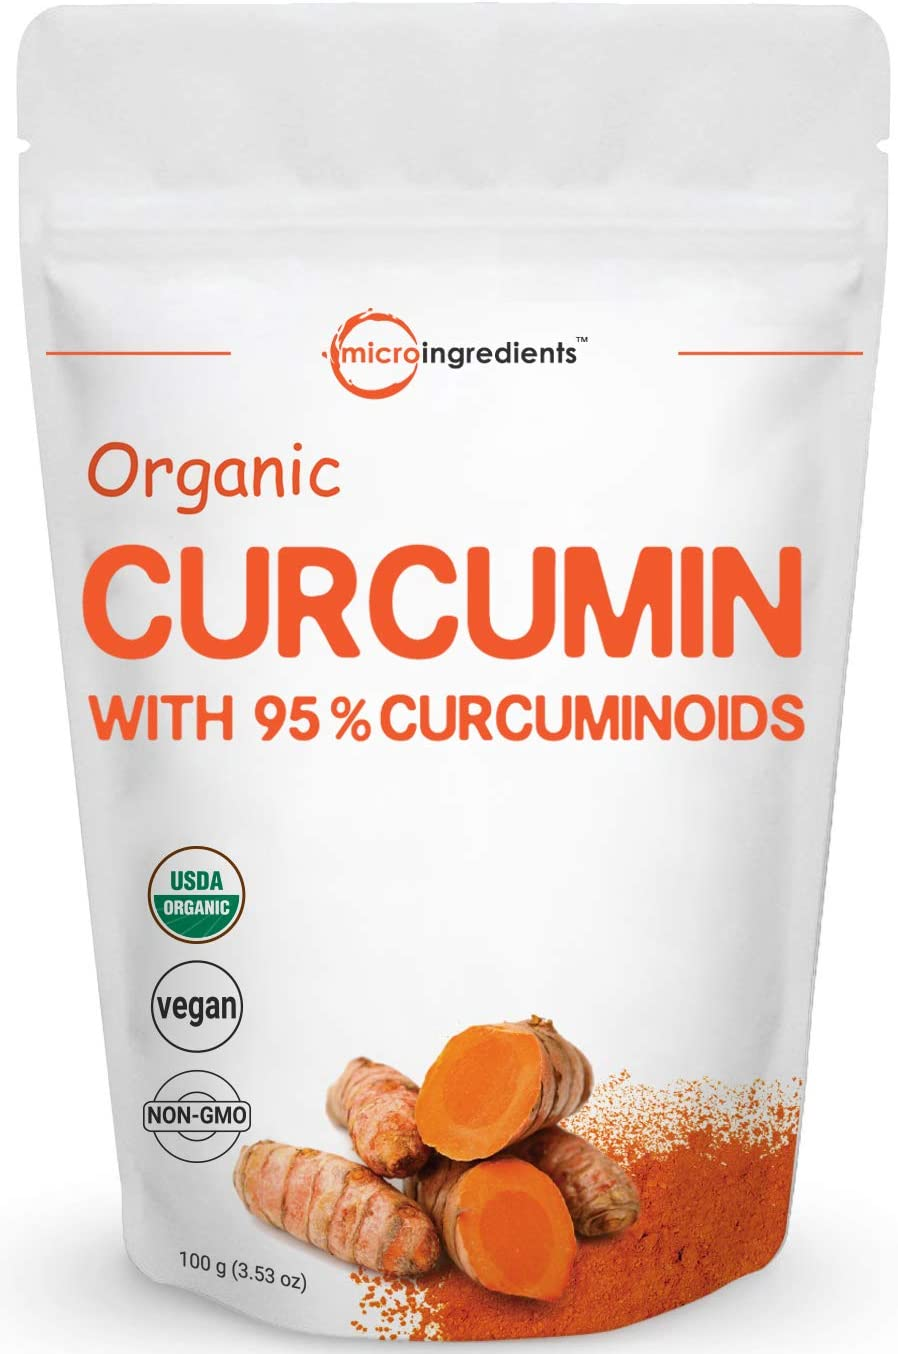 Maximum Strength Organic Curcumin Powder Natural Turmeric Extract and Turmeric Supplement